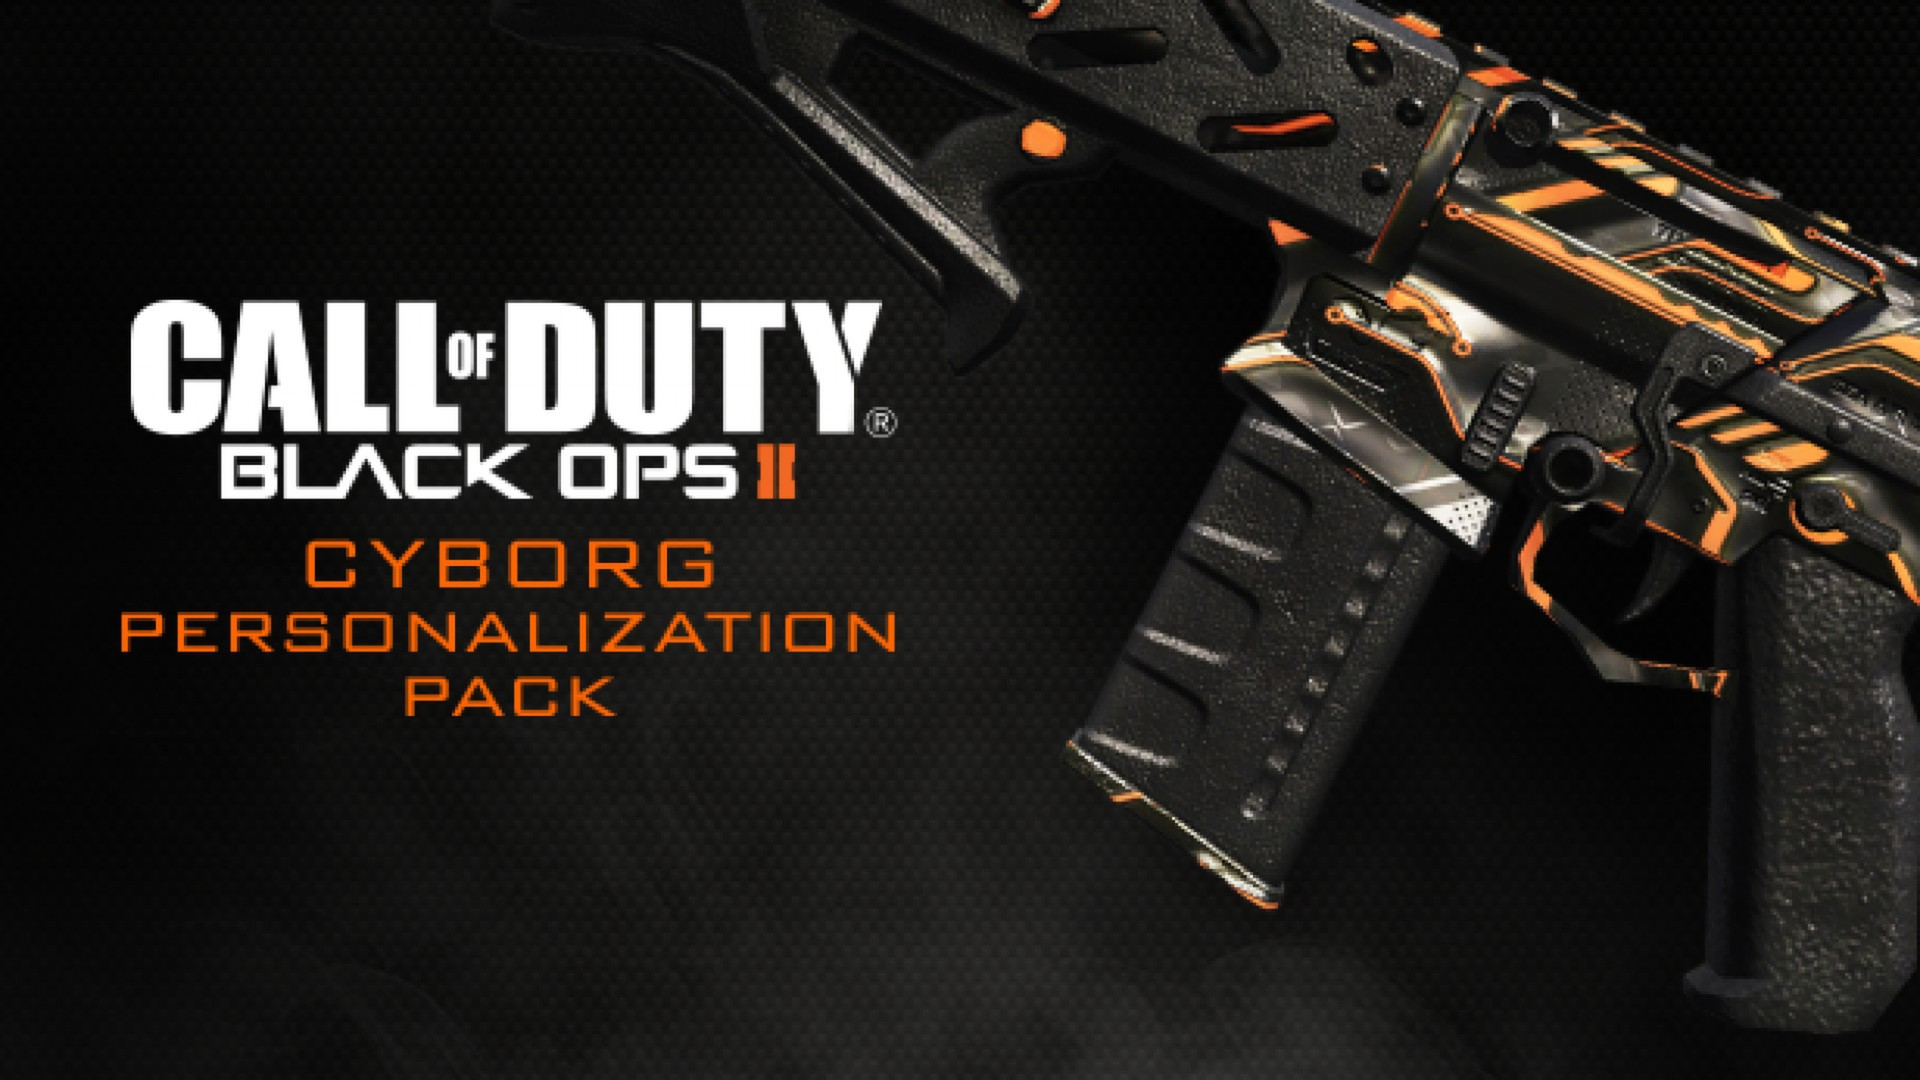 Call Of Duty Black Ops Ii Cyborg Personalization Pack On Steam